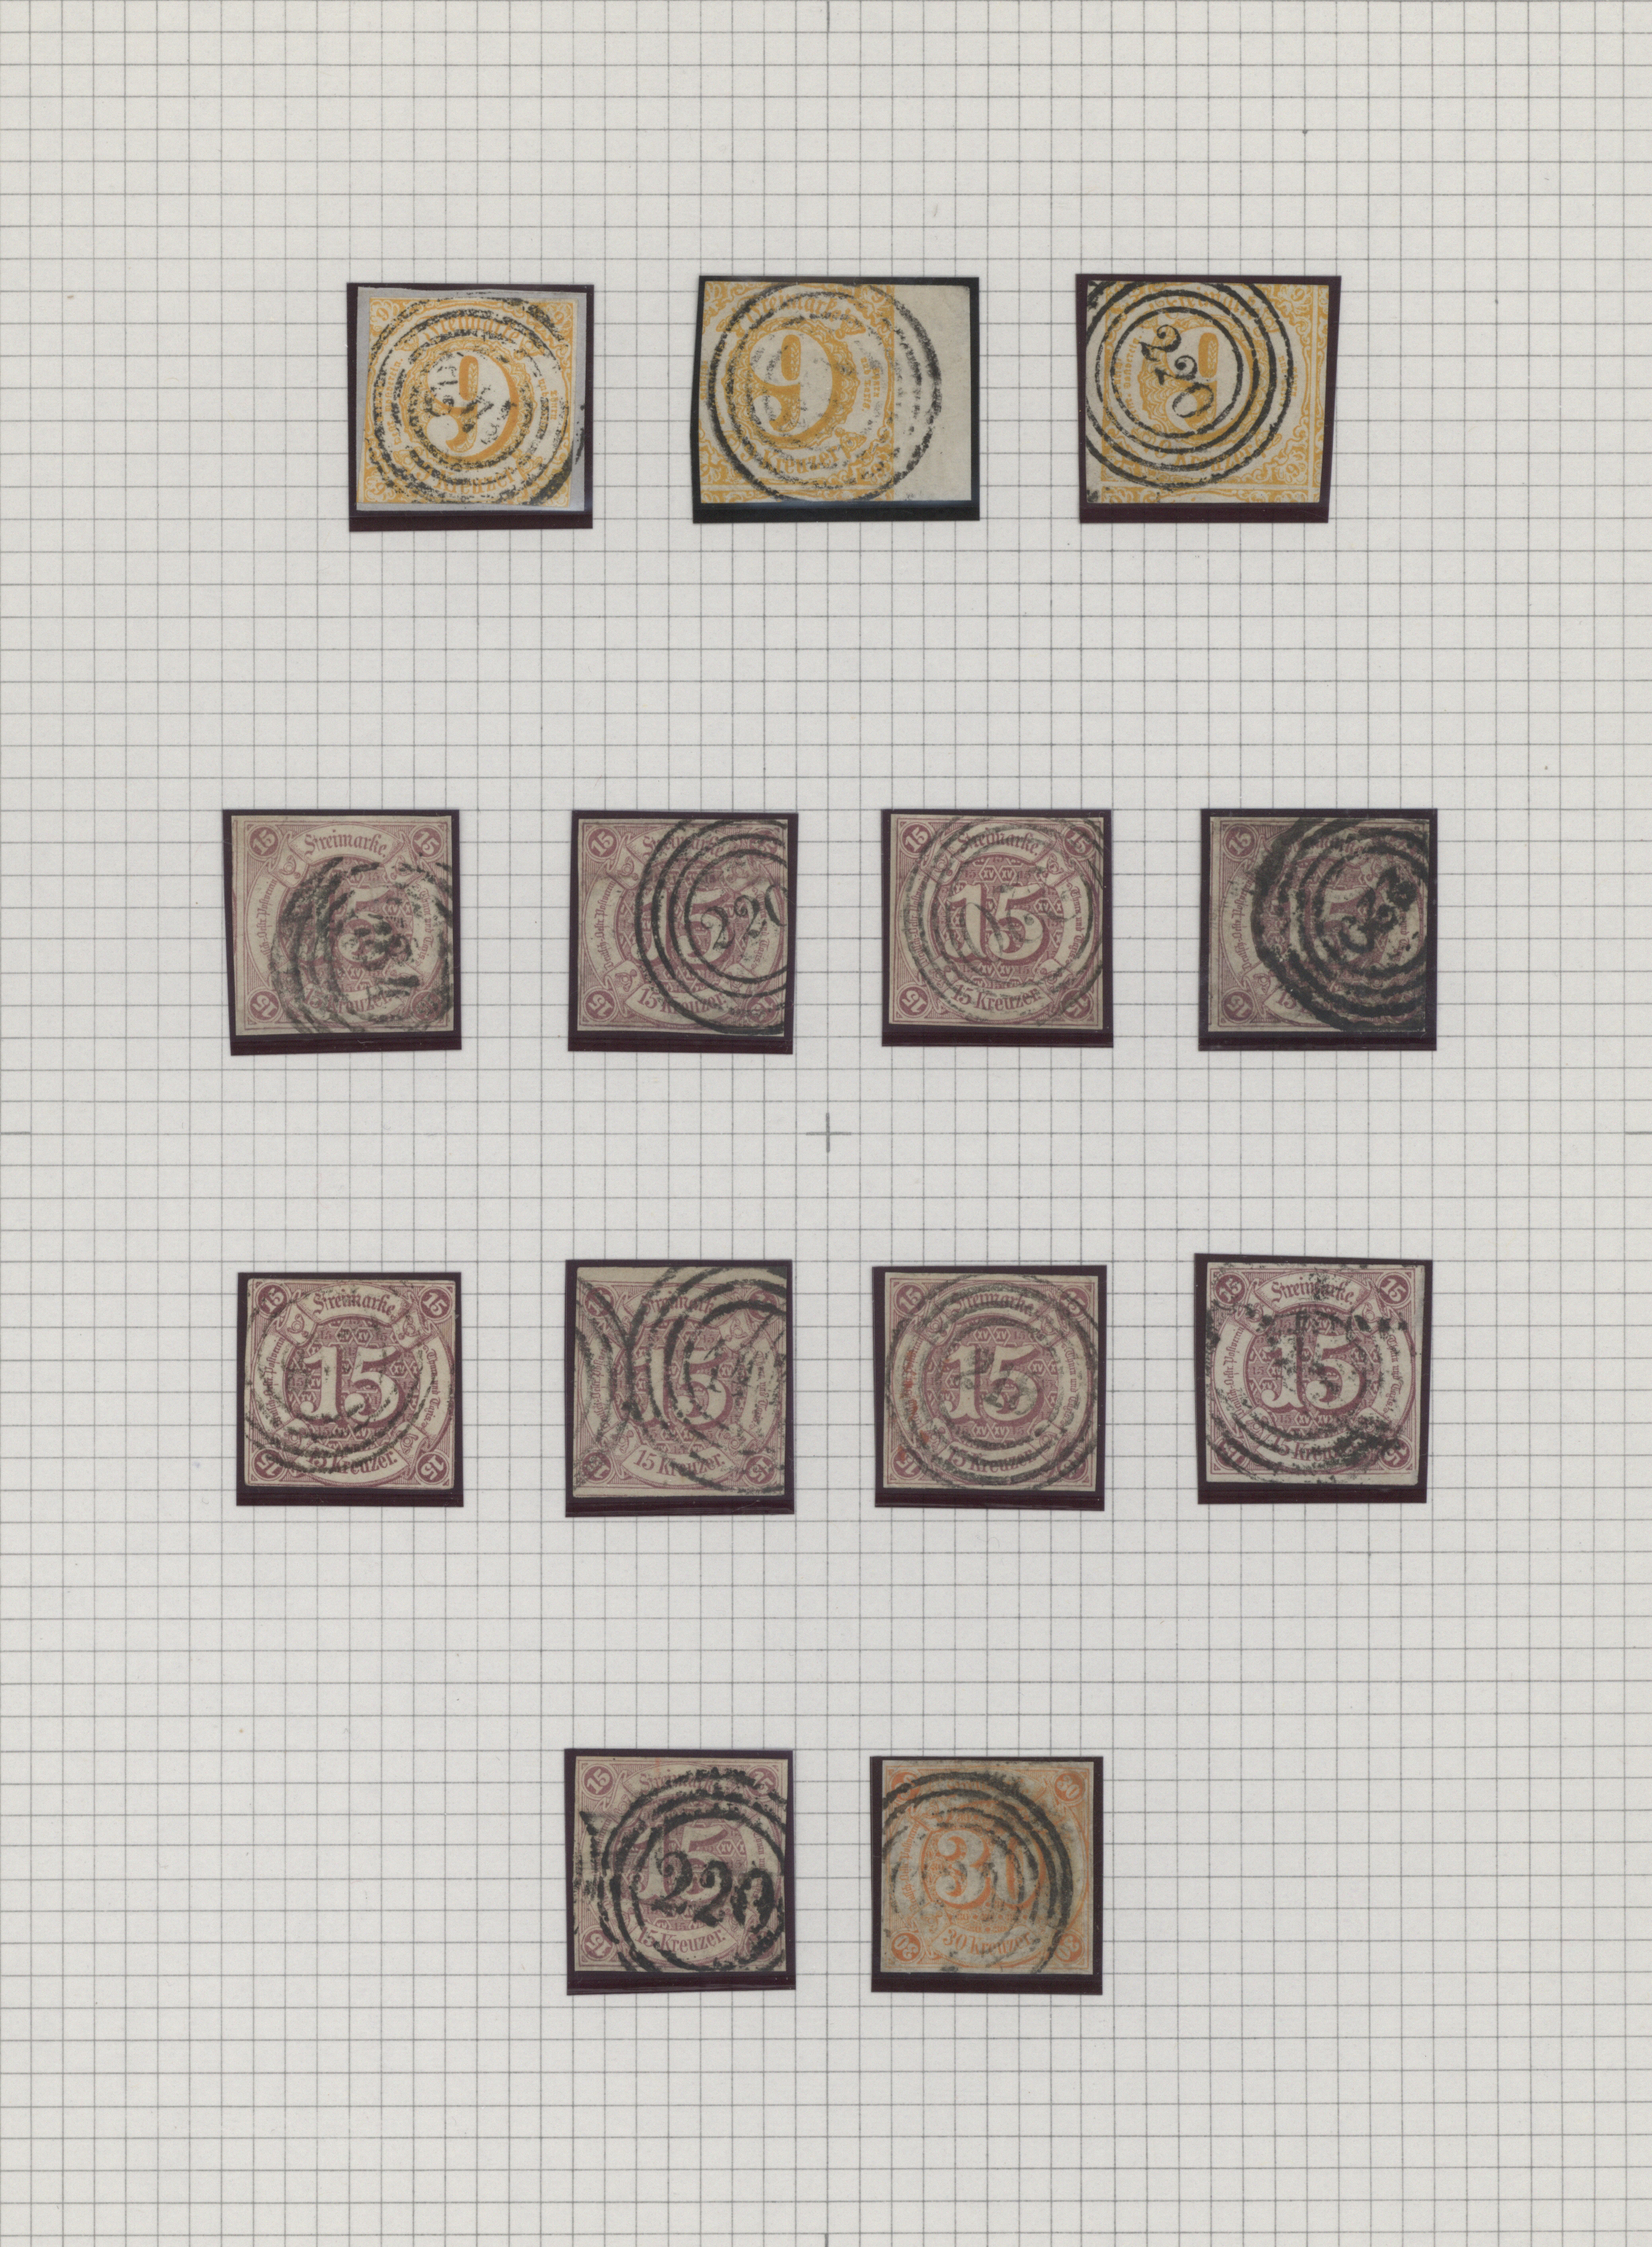 Lot 36299 - Thurn & Taxis - Marken und Briefe  -  Auktionshaus Christoph Gärtner GmbH & Co. KG Sale #44 Collections Germany